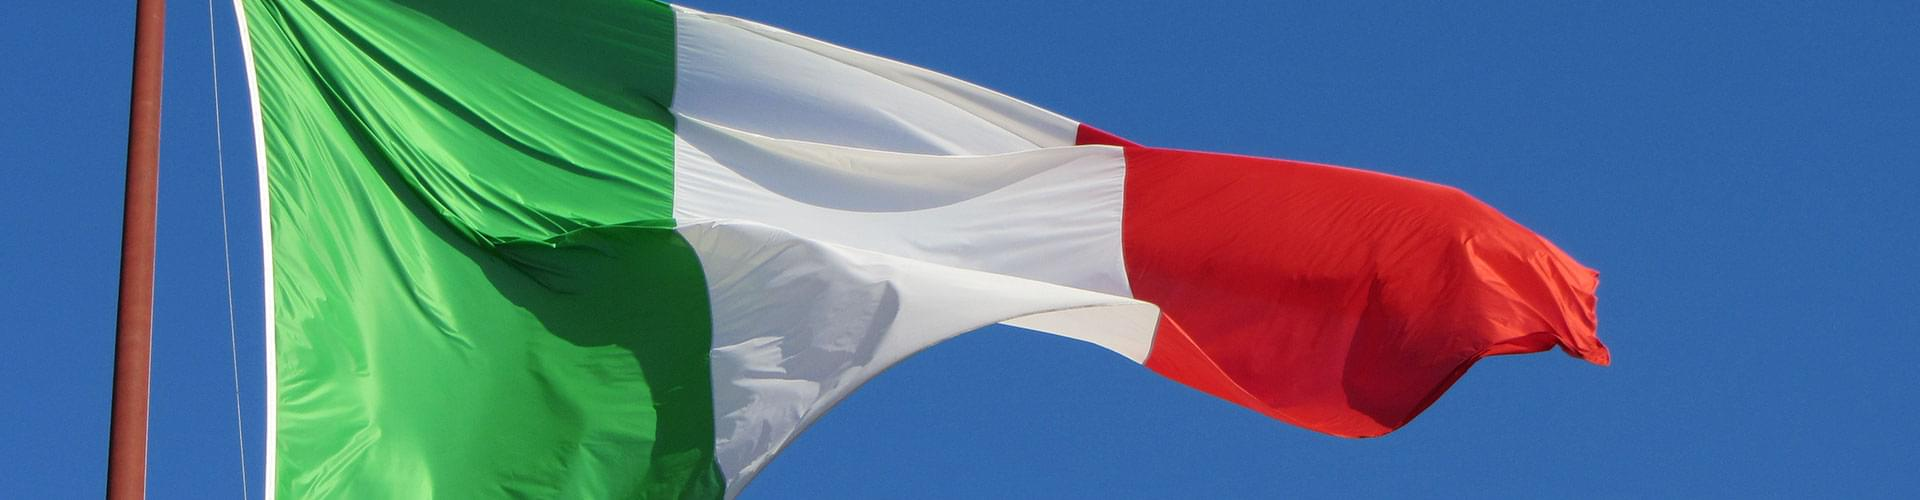 The Italian flag, il tricolore, flags italy